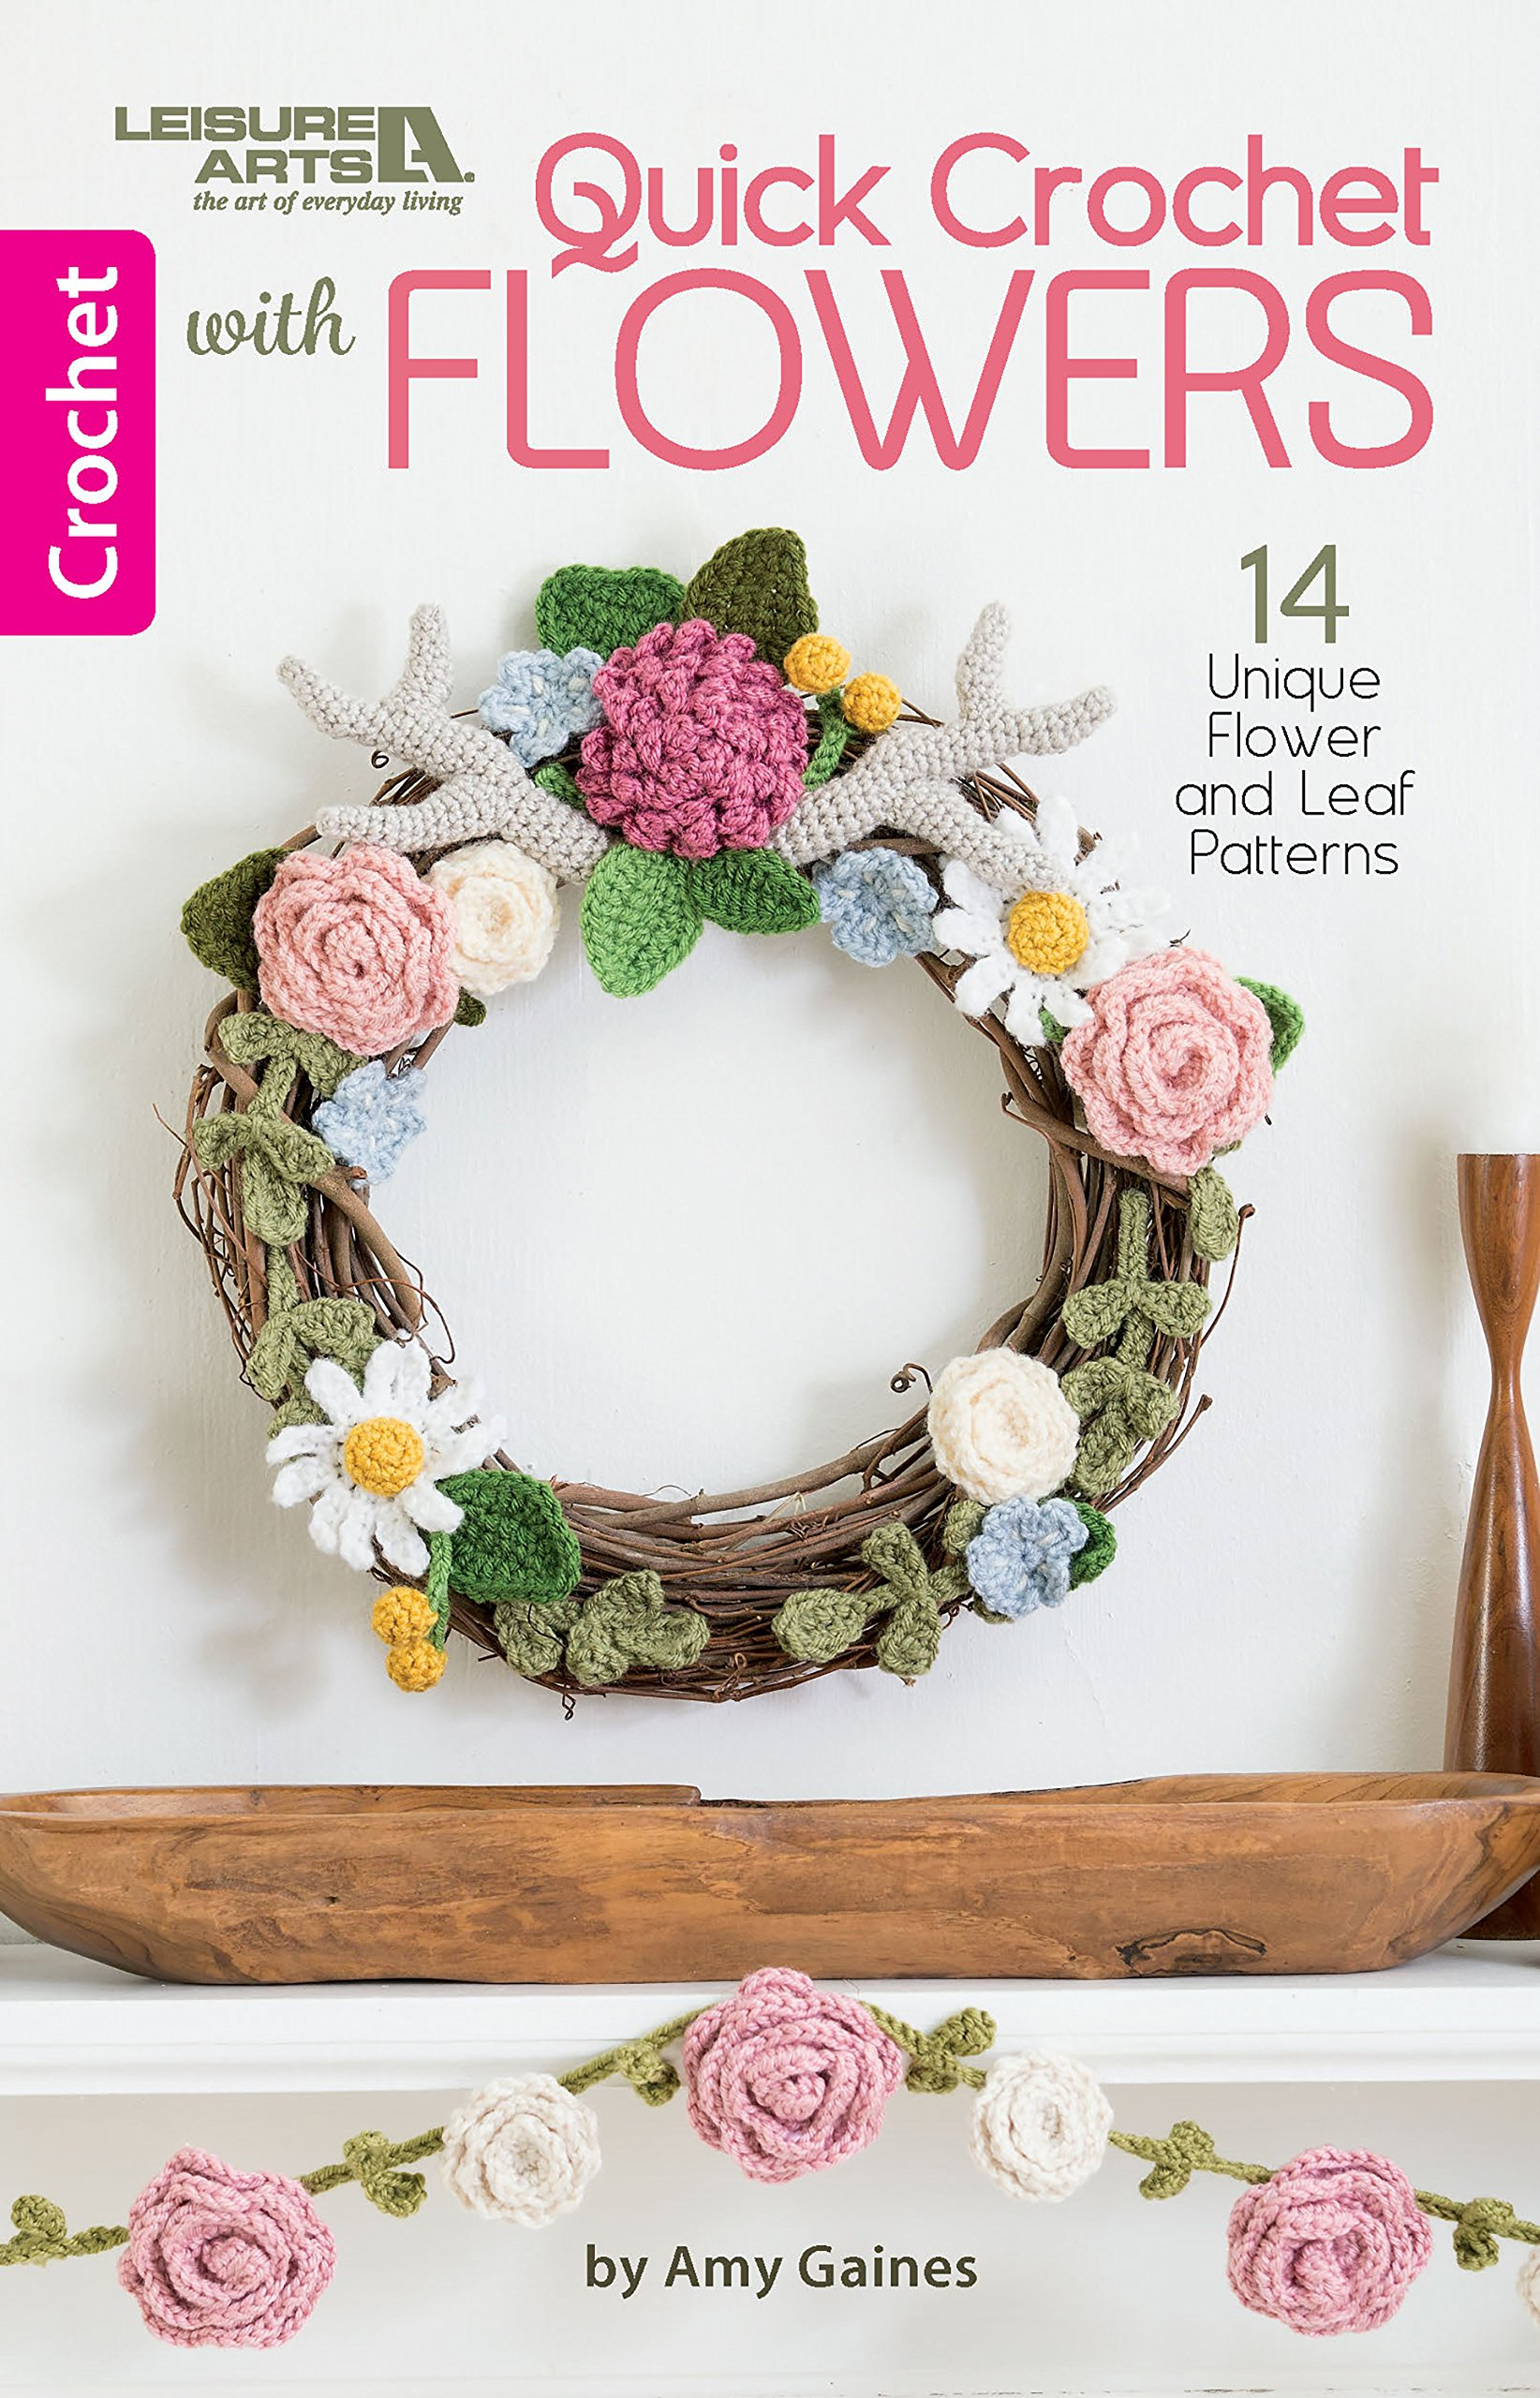 Quick Crochet With Flowers: 14 Unique Flower and Leaf Patterns: Amy Gaines:  9781464772405: Amazon.com: Books